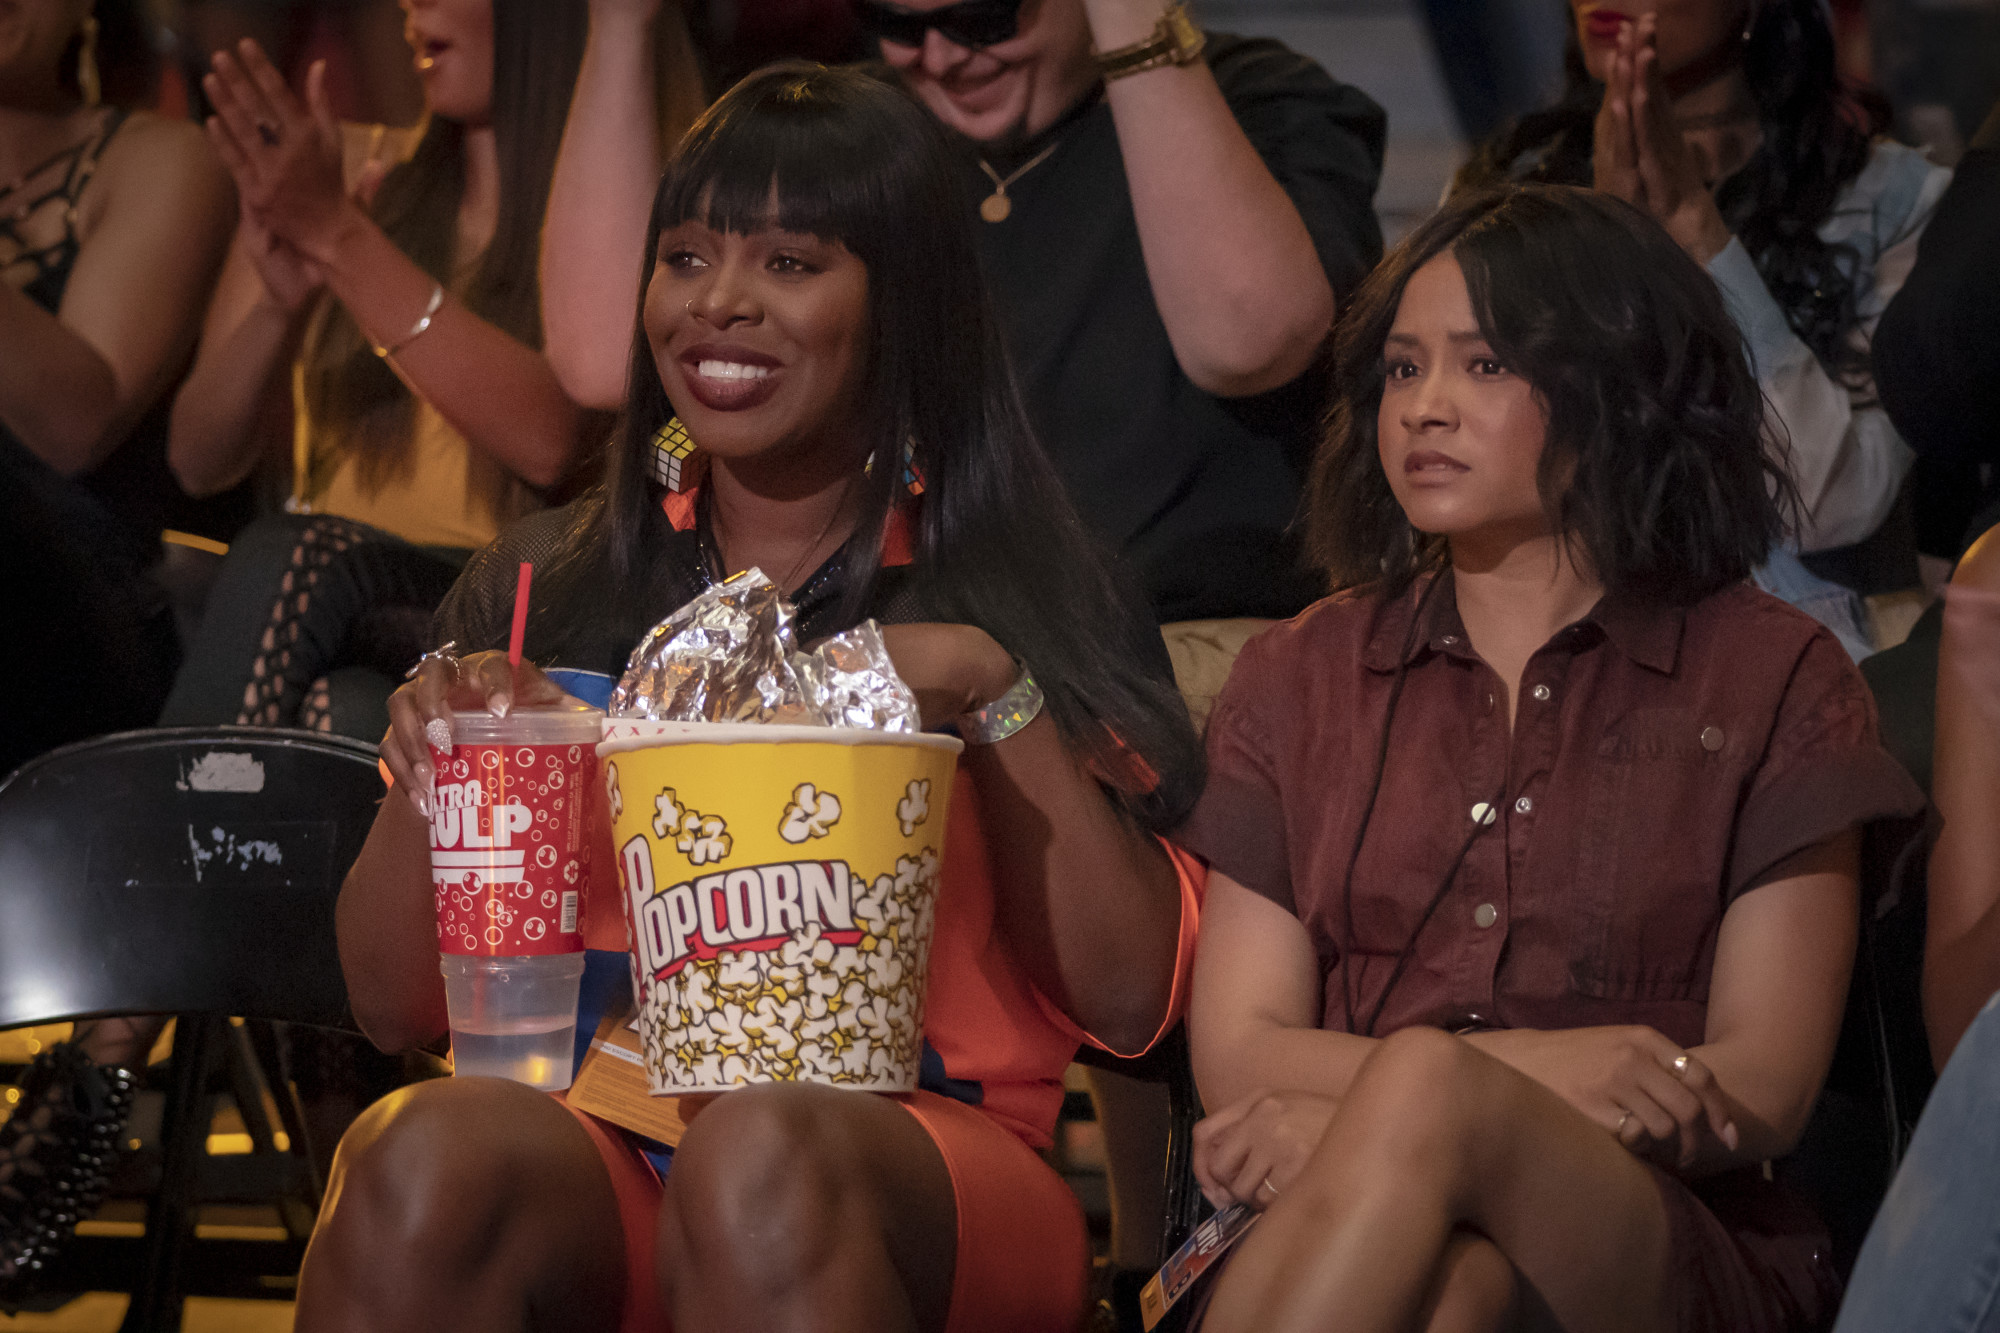 """EMPIRE: L-R: Ta'Rhonda Jones and Rhyon Nicole Brown in the """"What Is Love"""" season premiere episode of EMPIRE airing Tuesday, Sept. 24 (9:00-10:00 PM ET/PT) on FOX. ©2019 Fox Broadcasting Co. All Rights Reserved. CR: Chuck Hodes/FOX."""